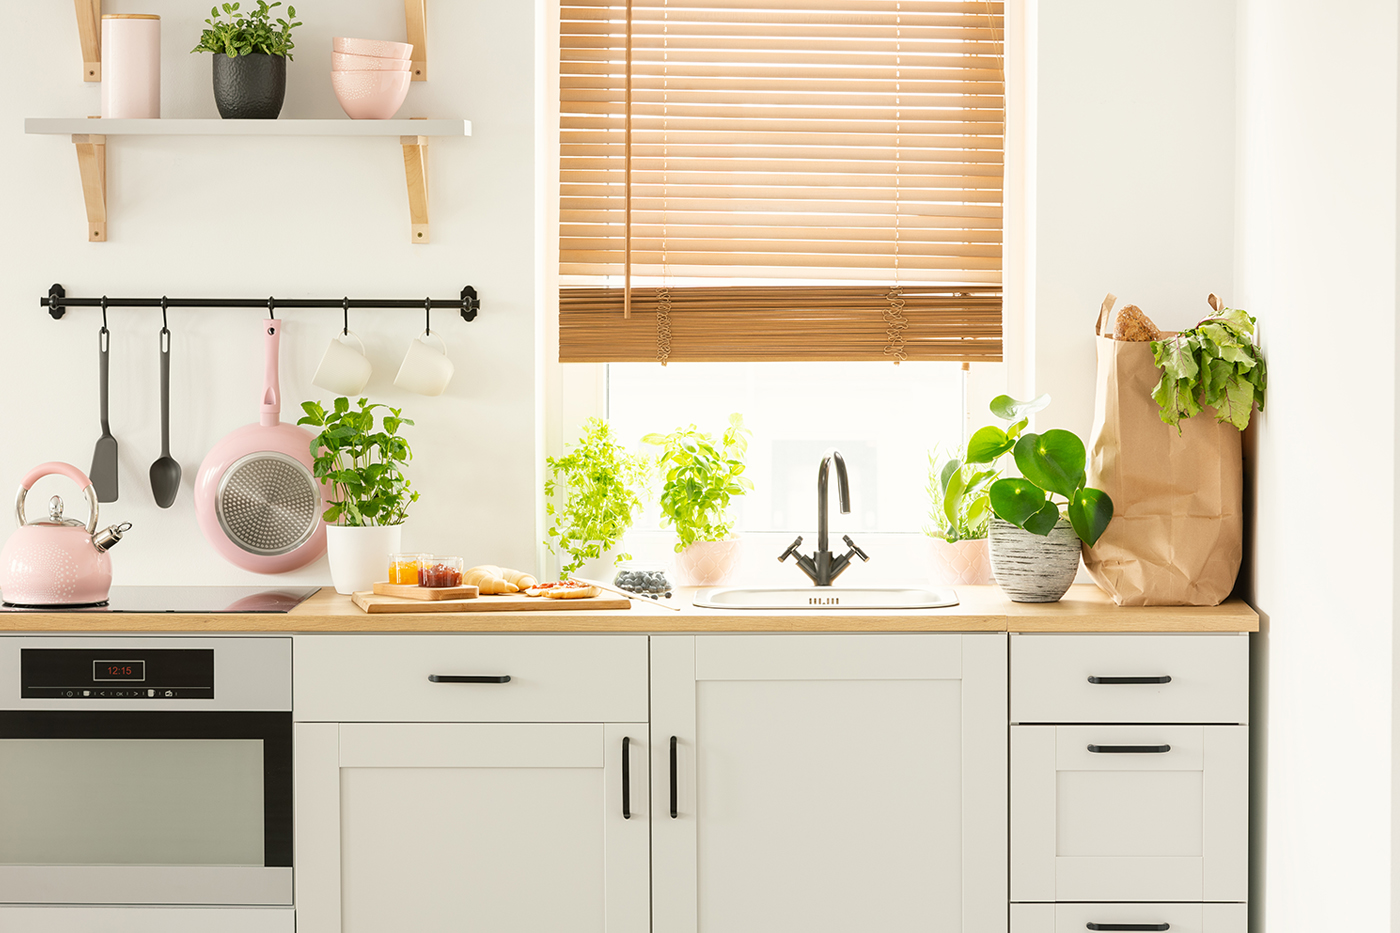 Improve Your Kitchen with These Simple Tips